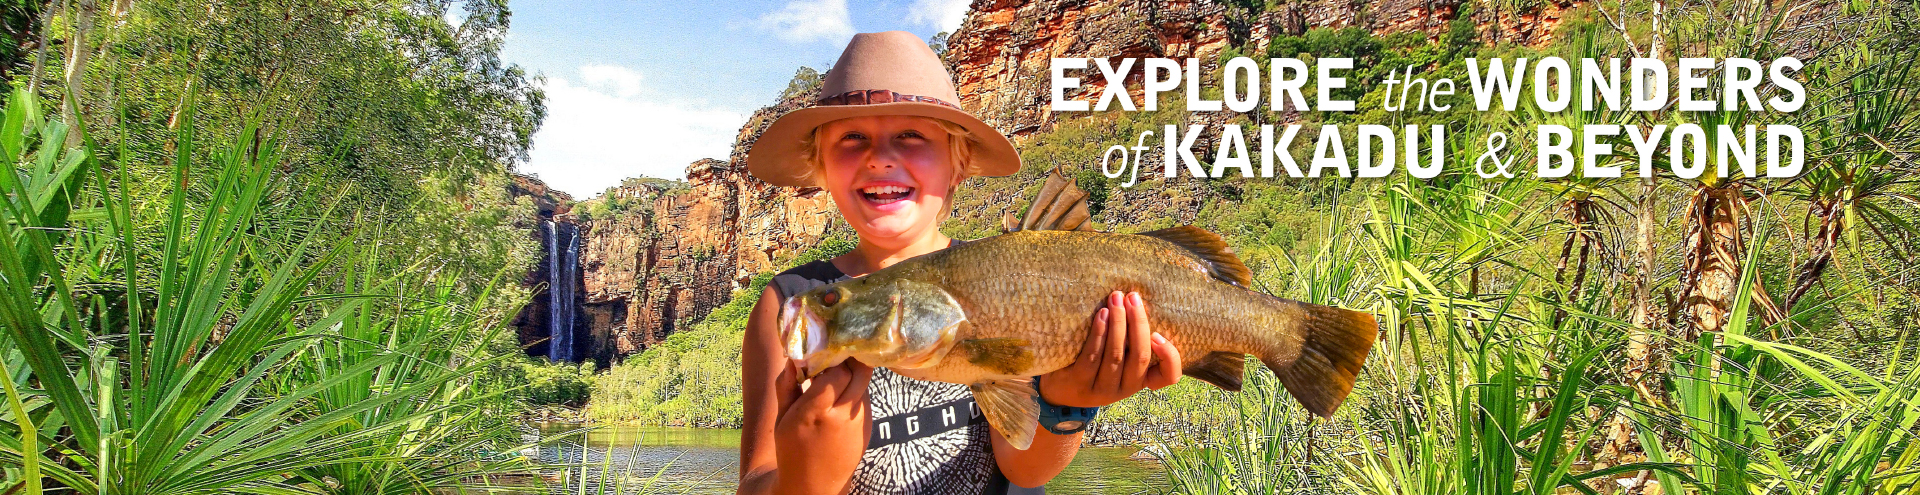 Explore the wonders of Kakadu and beyond